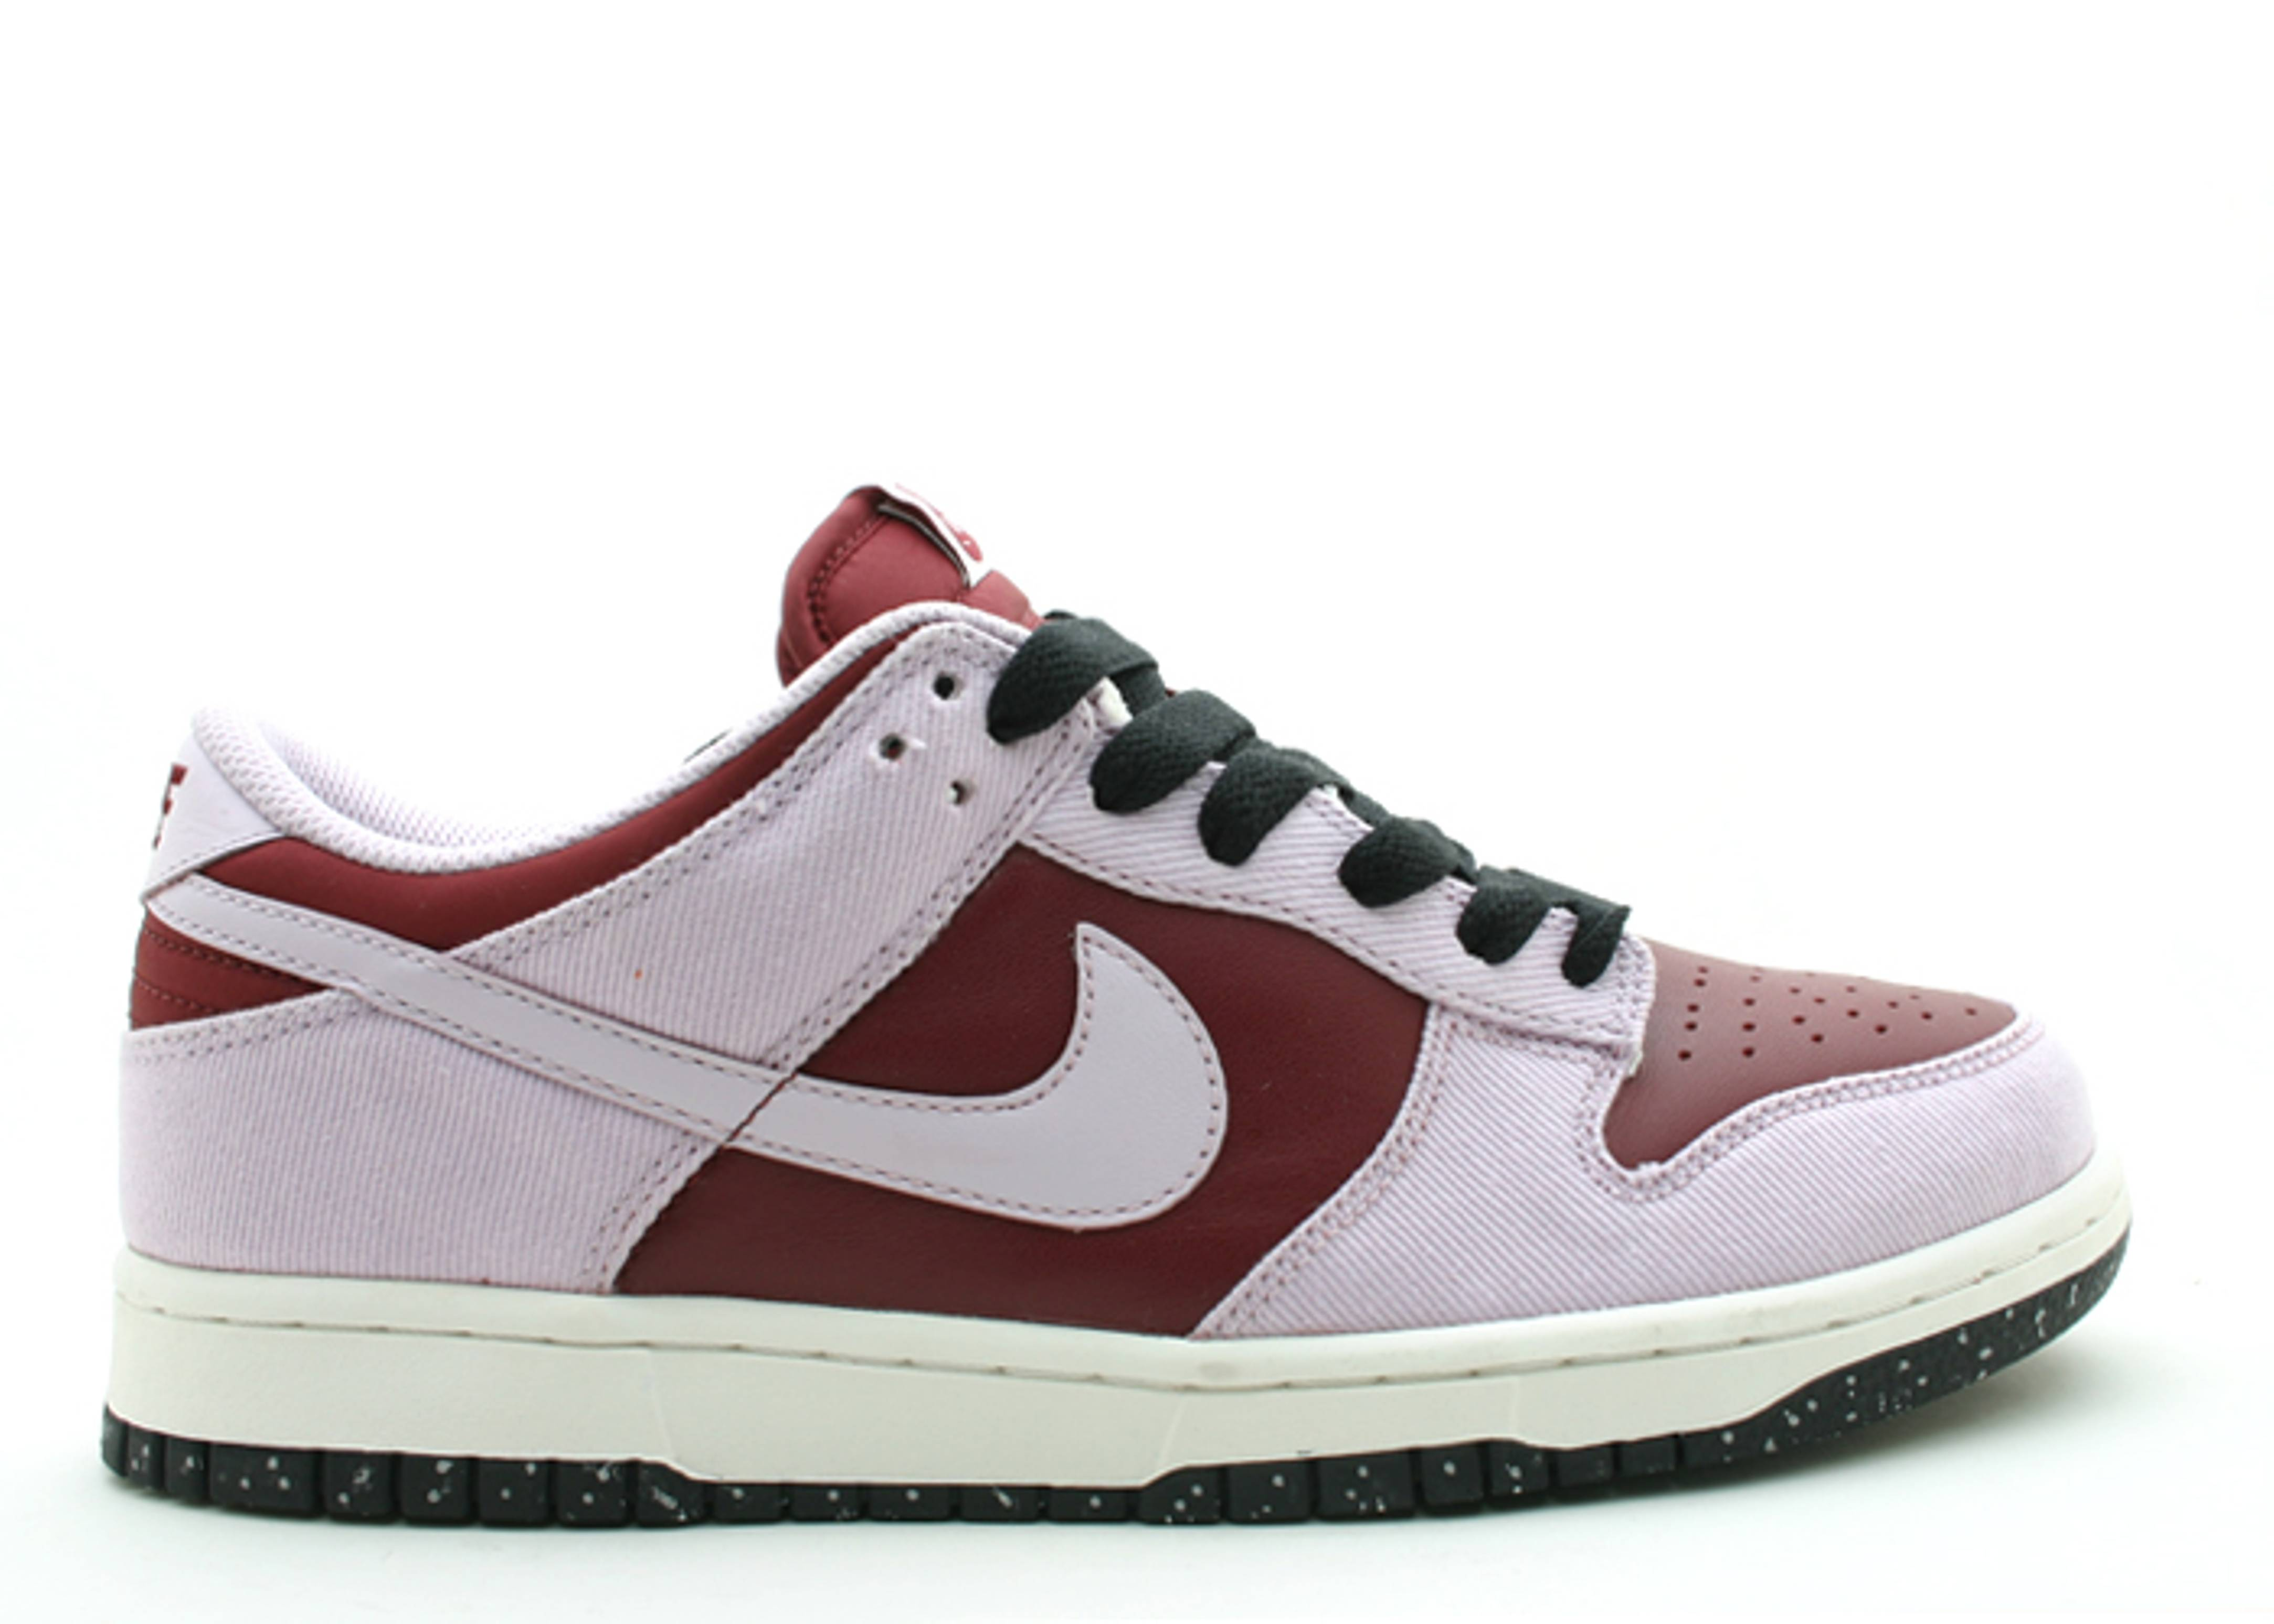 w's dunk low cl